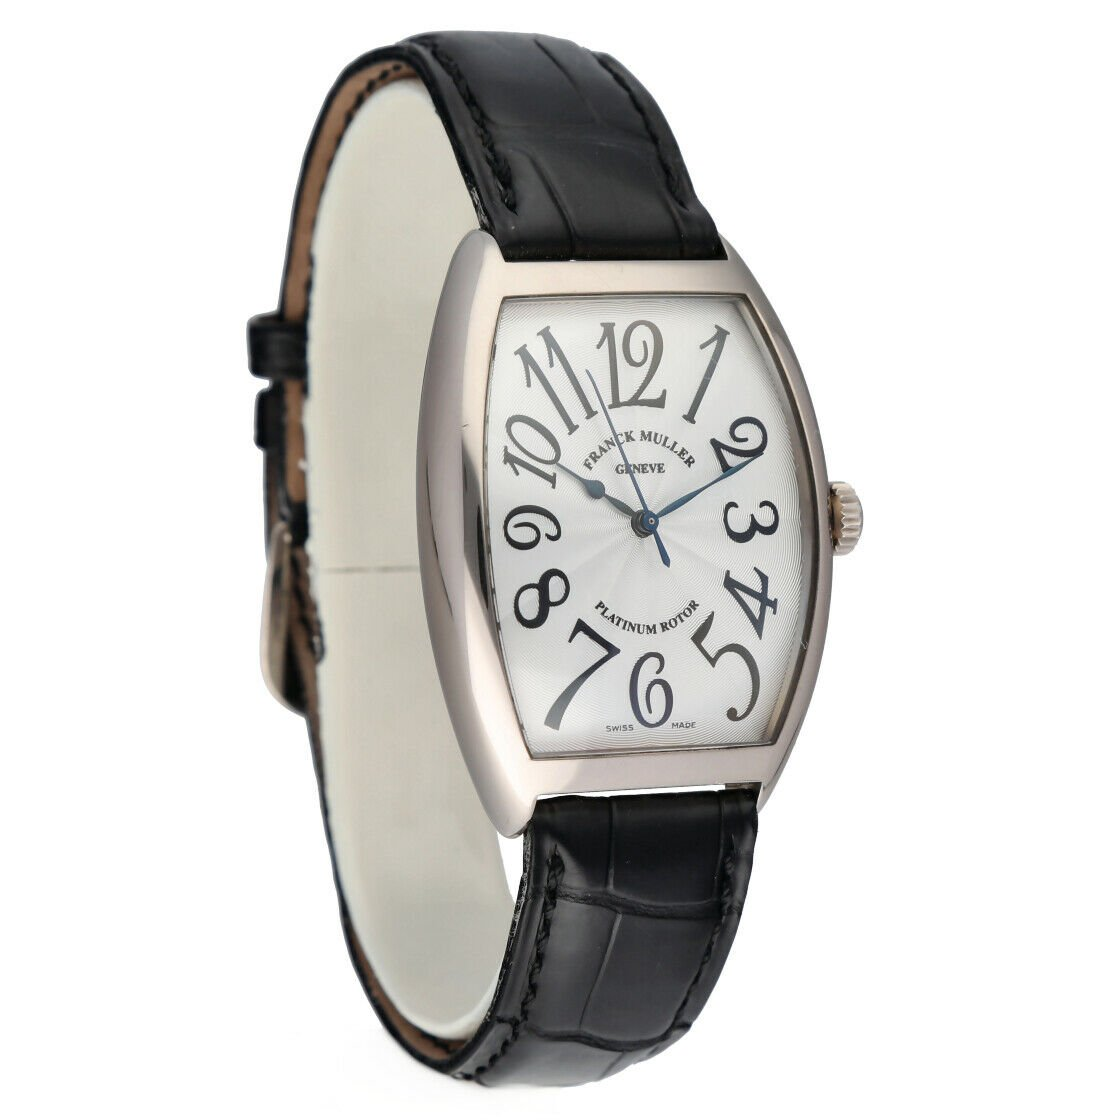 Franck Muller 6850 SC Cintree Curvex 18k White Gold Leather Automatic Mens Watch 124317748372 4